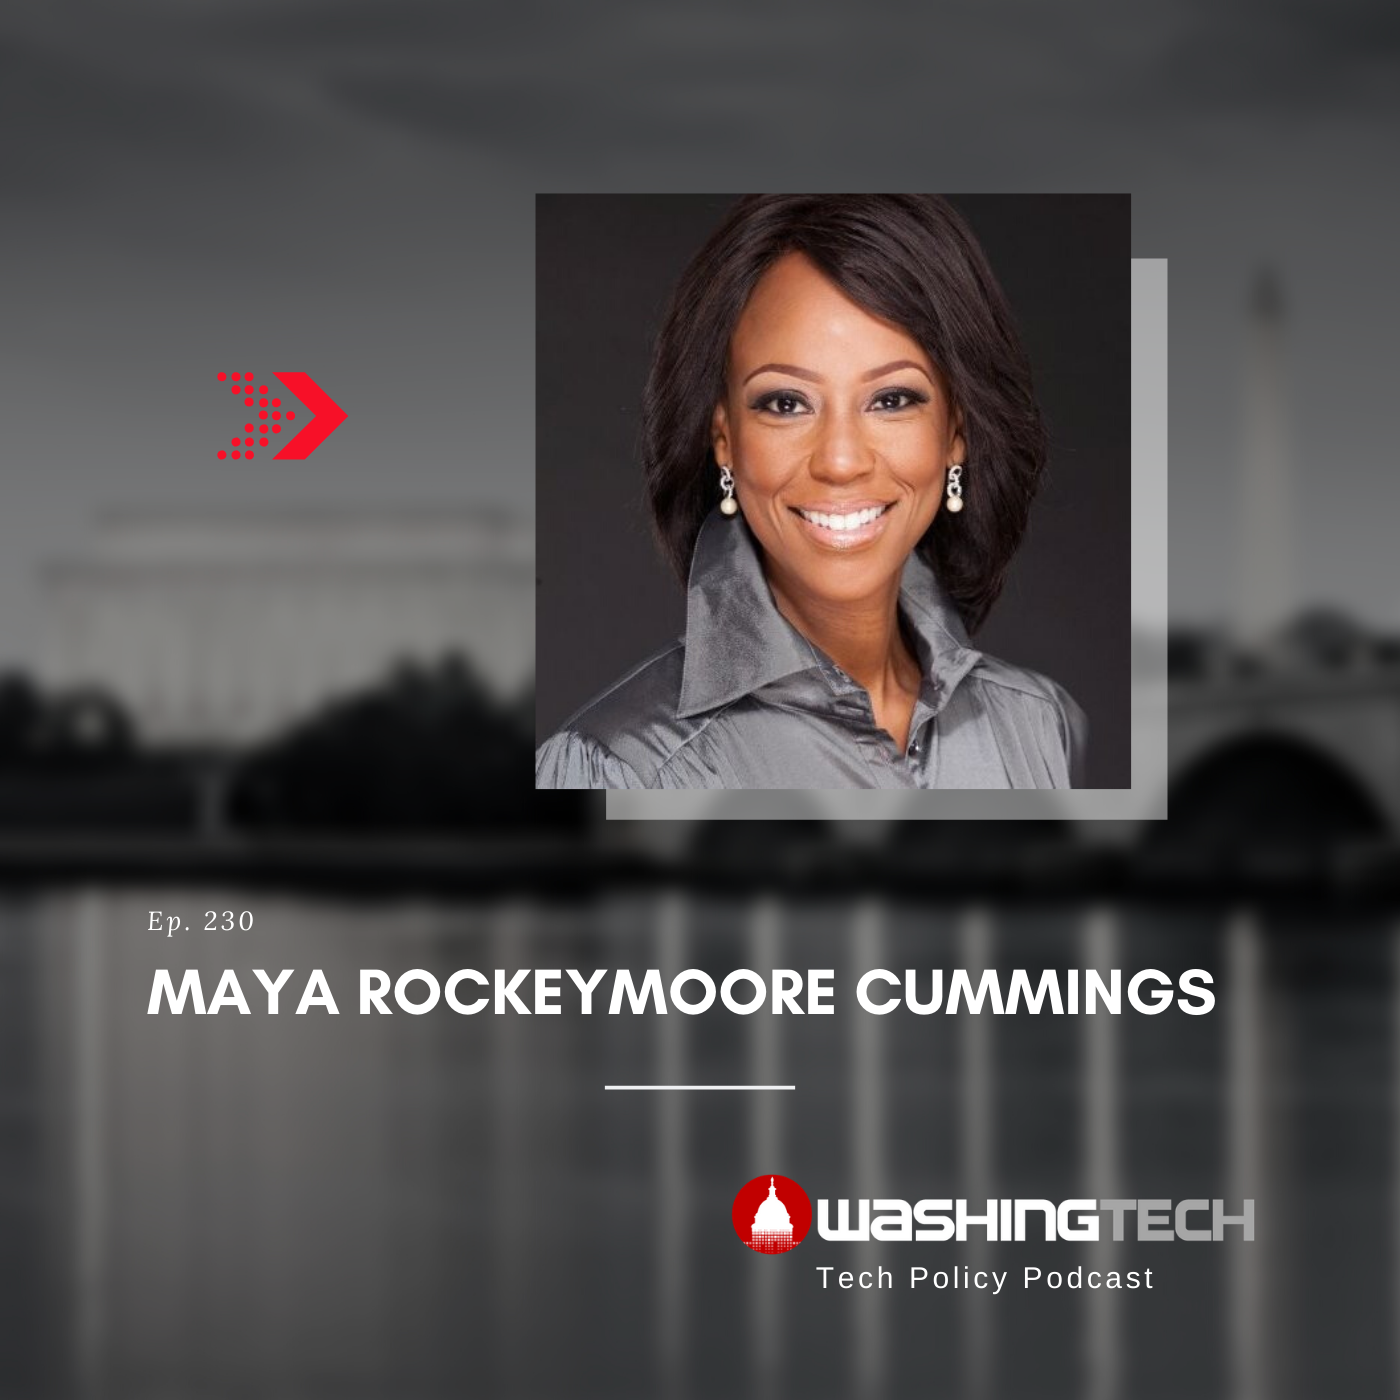 Maya Rockeymoore Cummings